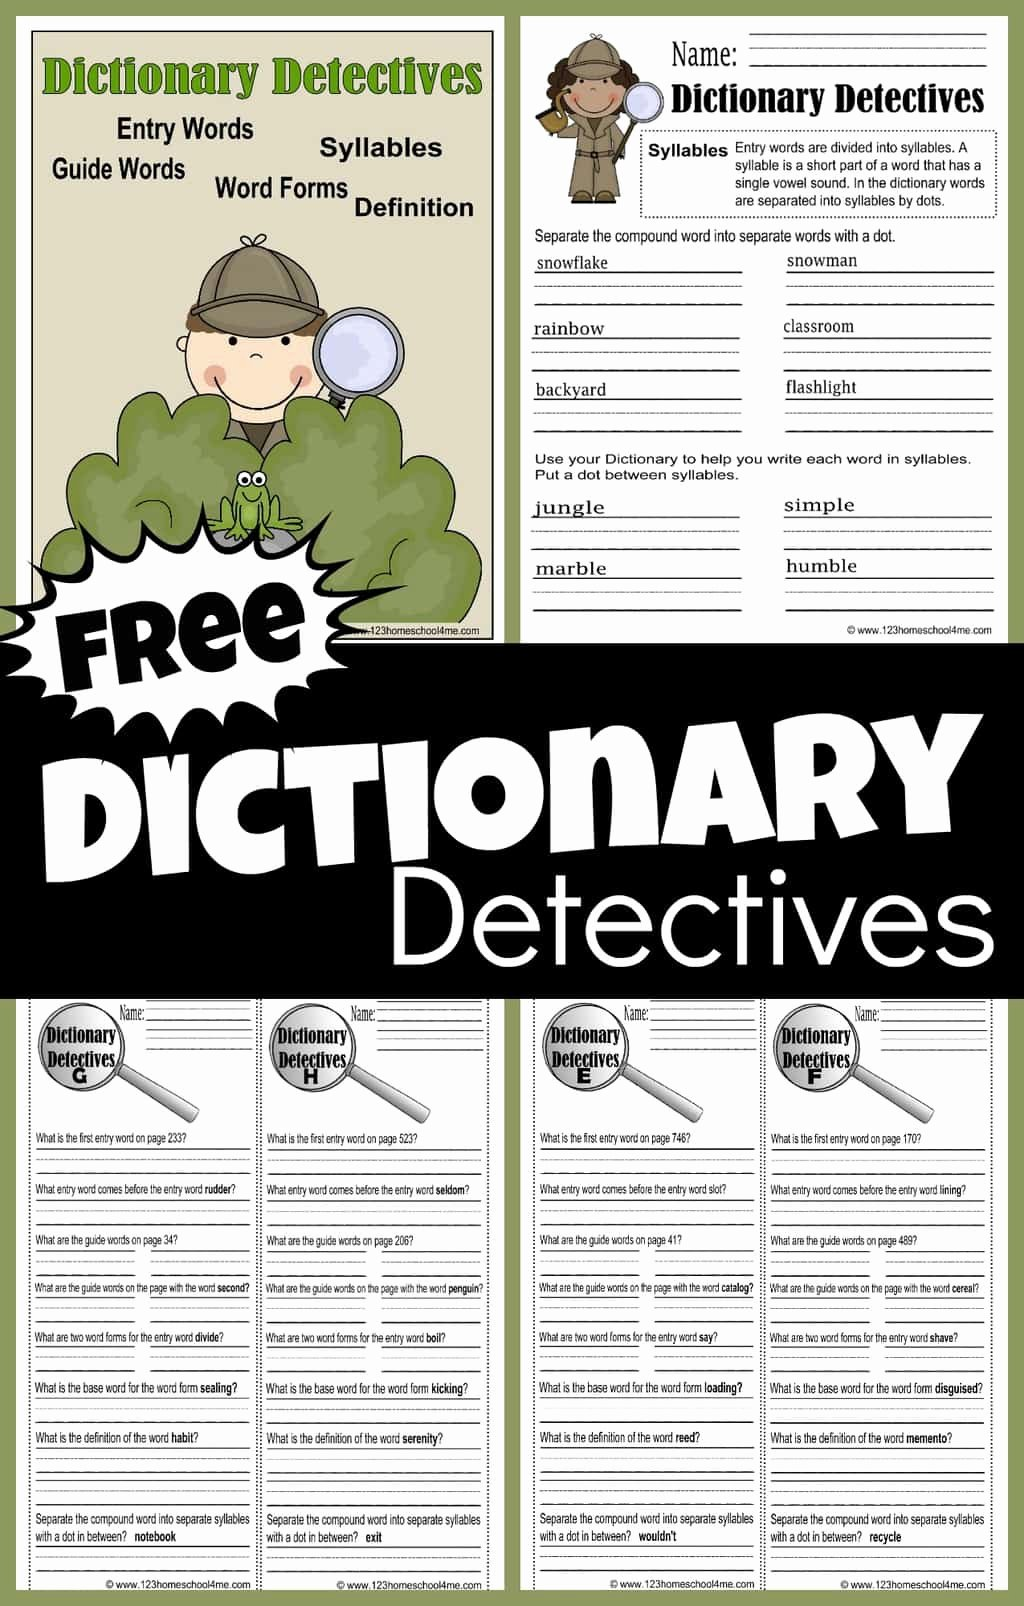 Dictionary Skills Worksheets Middle School Inspirational Free Dictionary Detective Worksheets for Kids